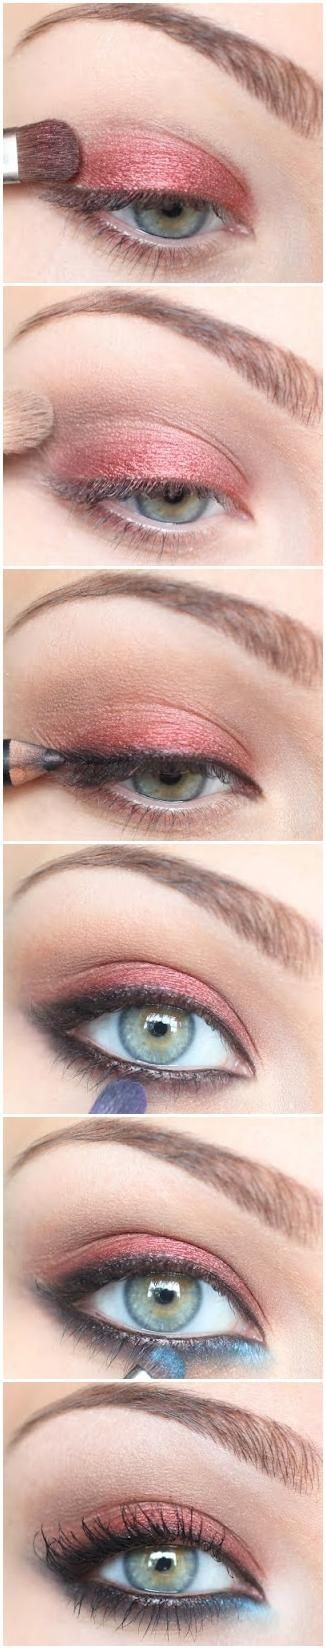 eyeshadow: coral shadow on top, light blue in the lower inner corner @ The Beauty ThesisThe Beauty Thesis